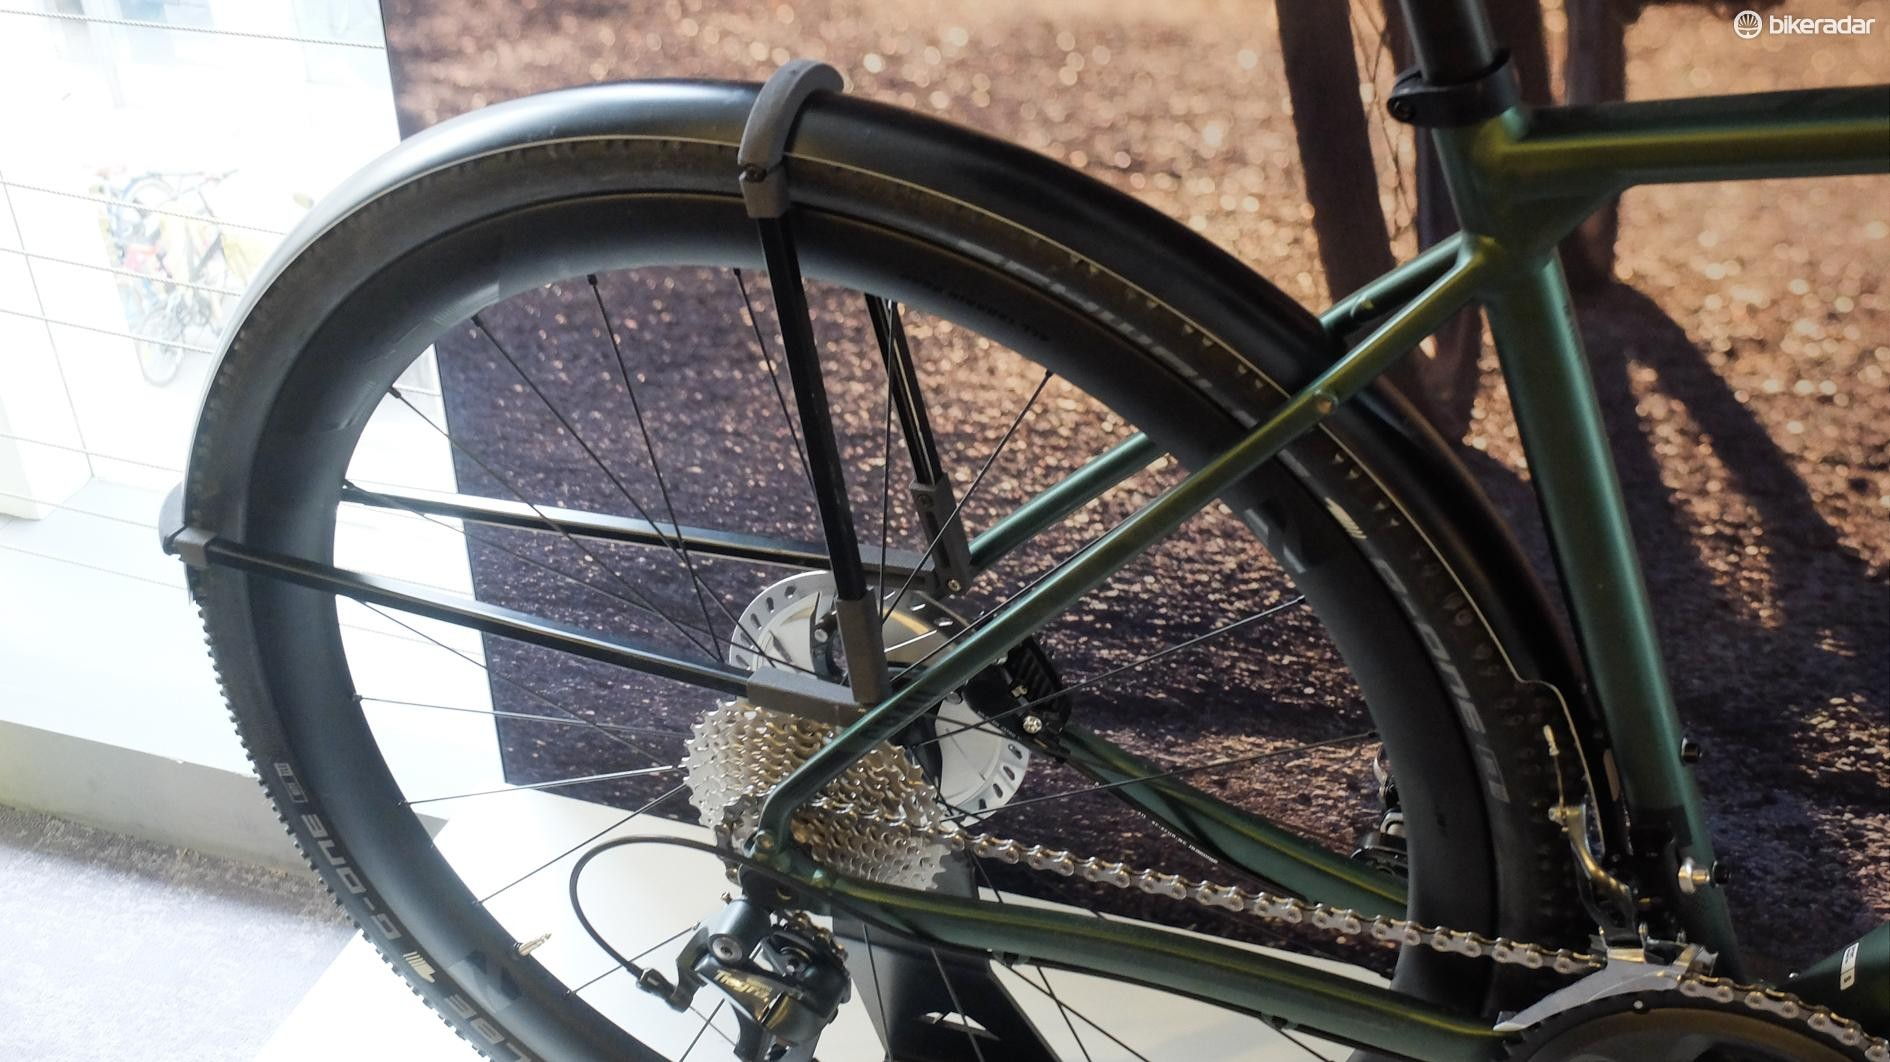 Canyon has gone as far to develop a set of nicely matching alloy mudguards for the Grail